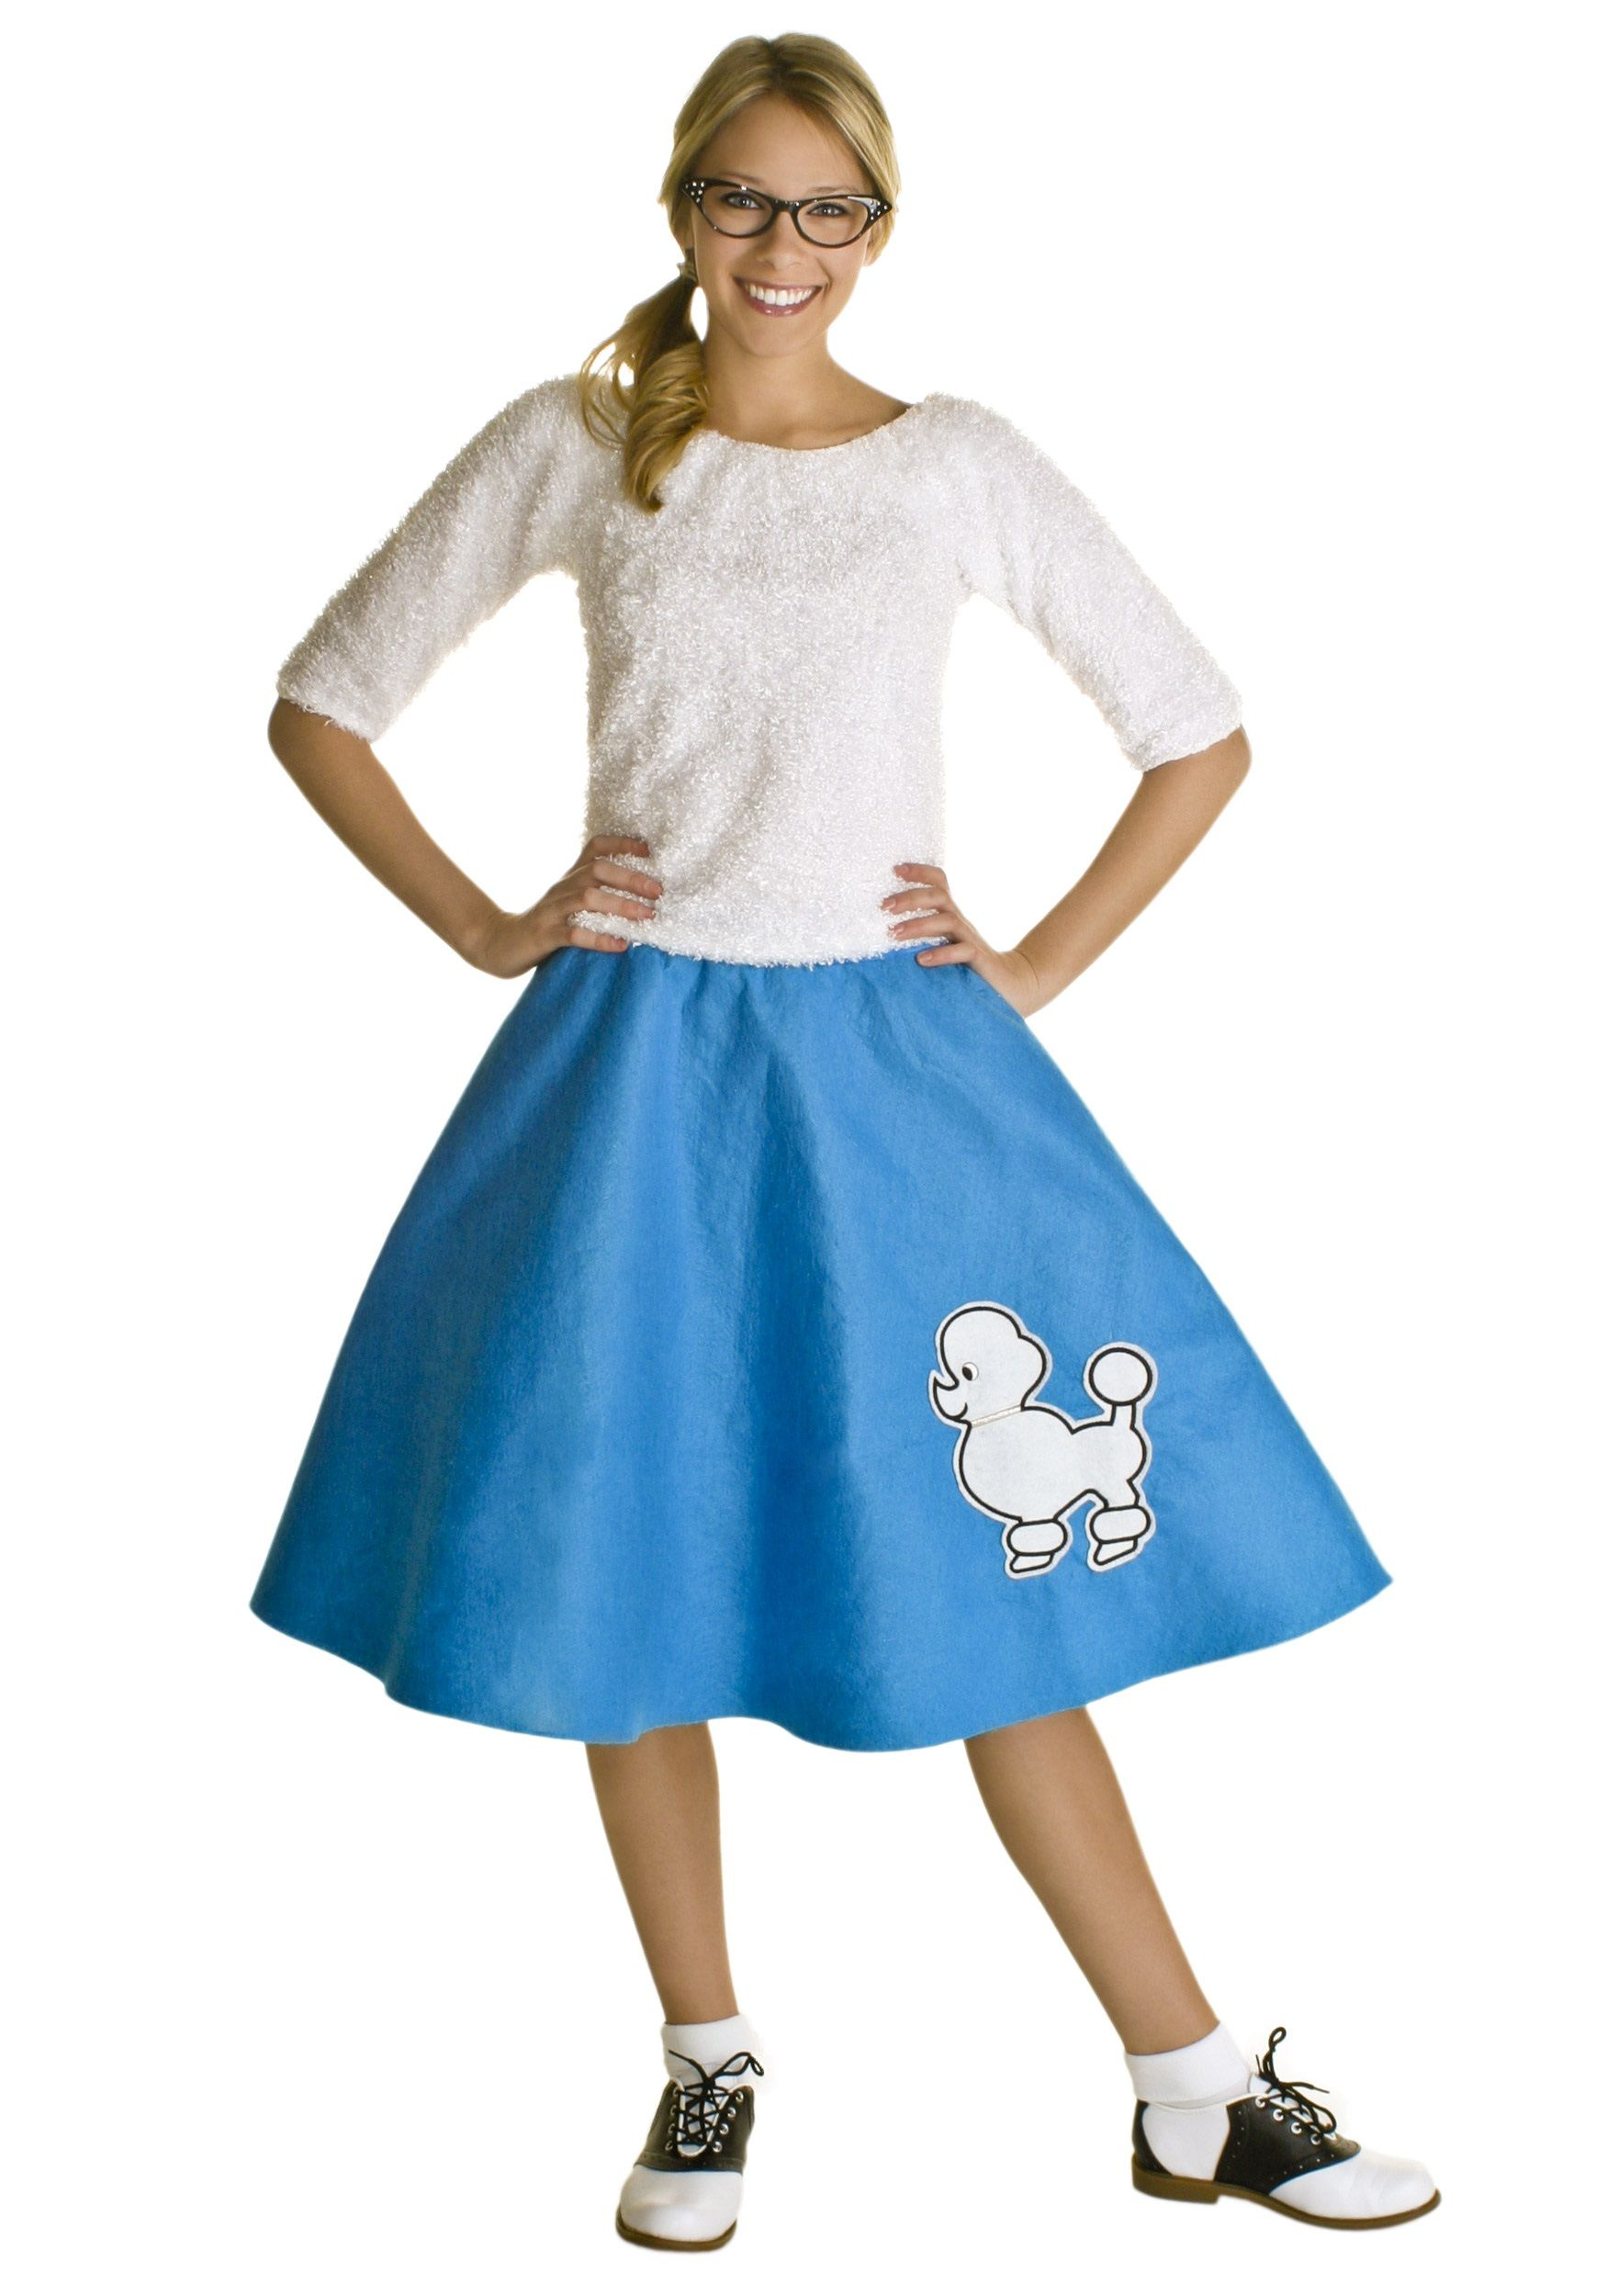 How To Make A Poodle Skirt That Became A Trend In The 50s Poodle